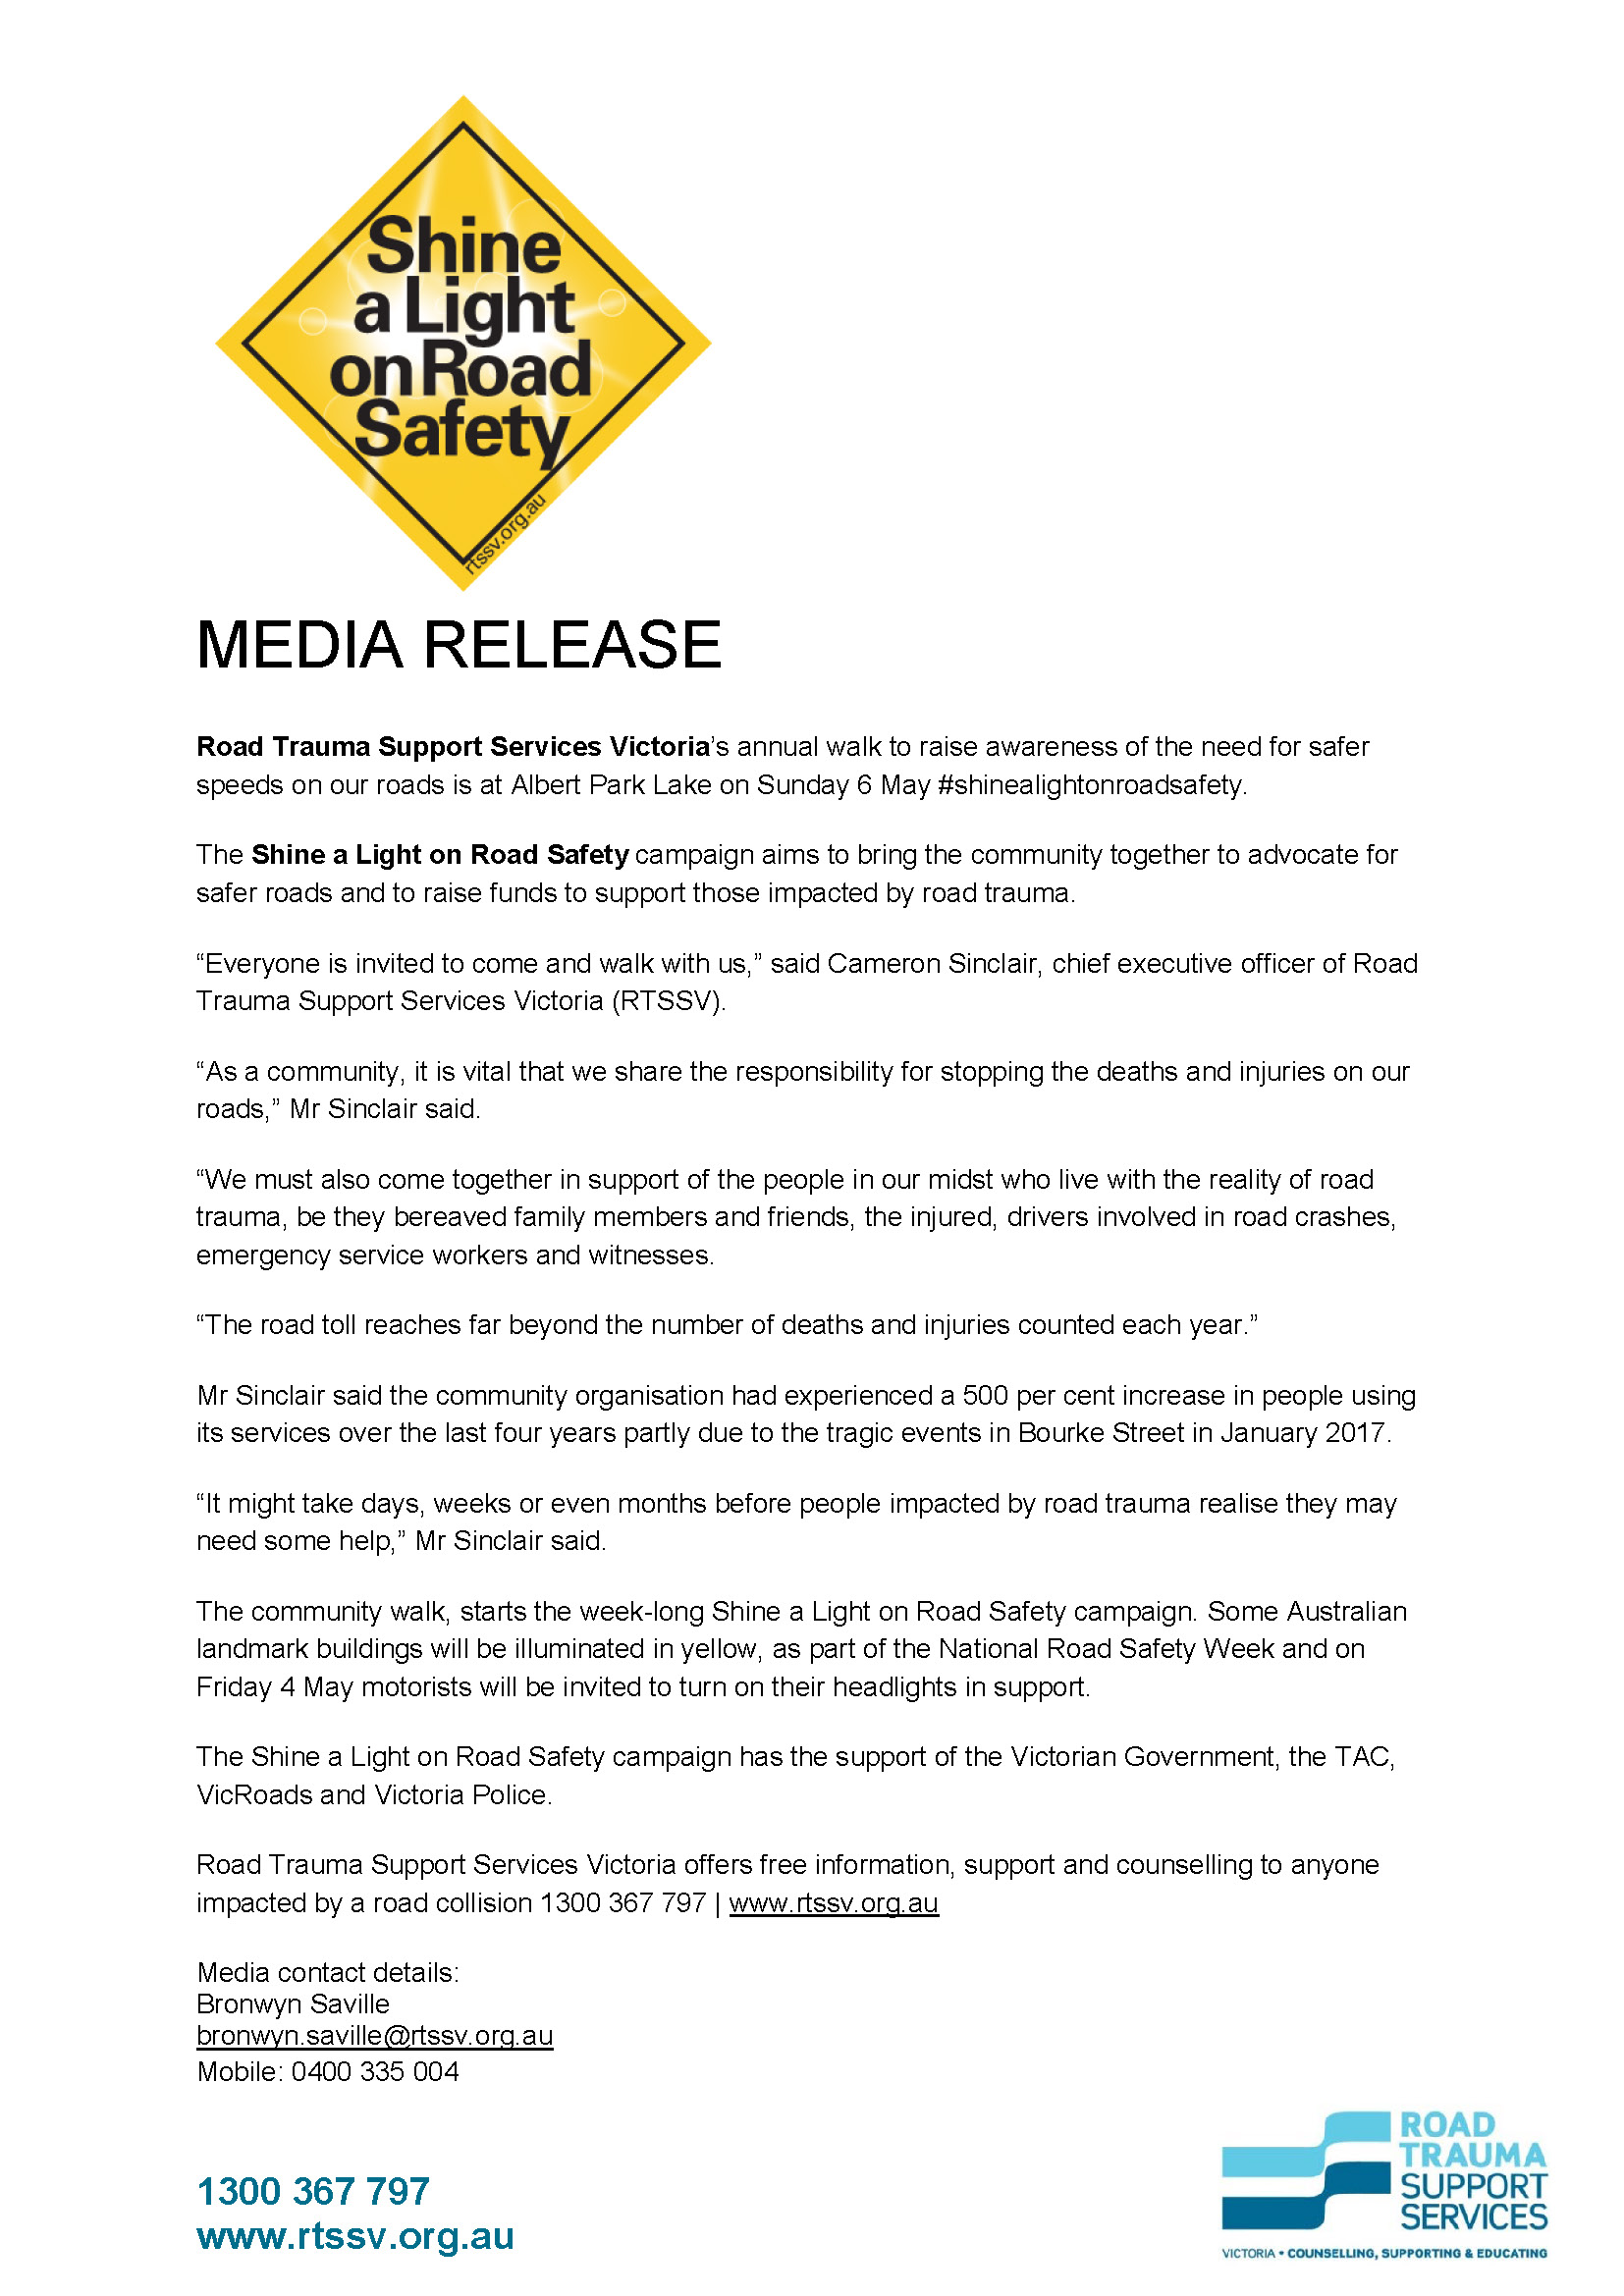 Shine a light on road safety tools rtssv road trauma support rtssvshinealightonroadsafetymediarelease2018page1 fandeluxe Image collections